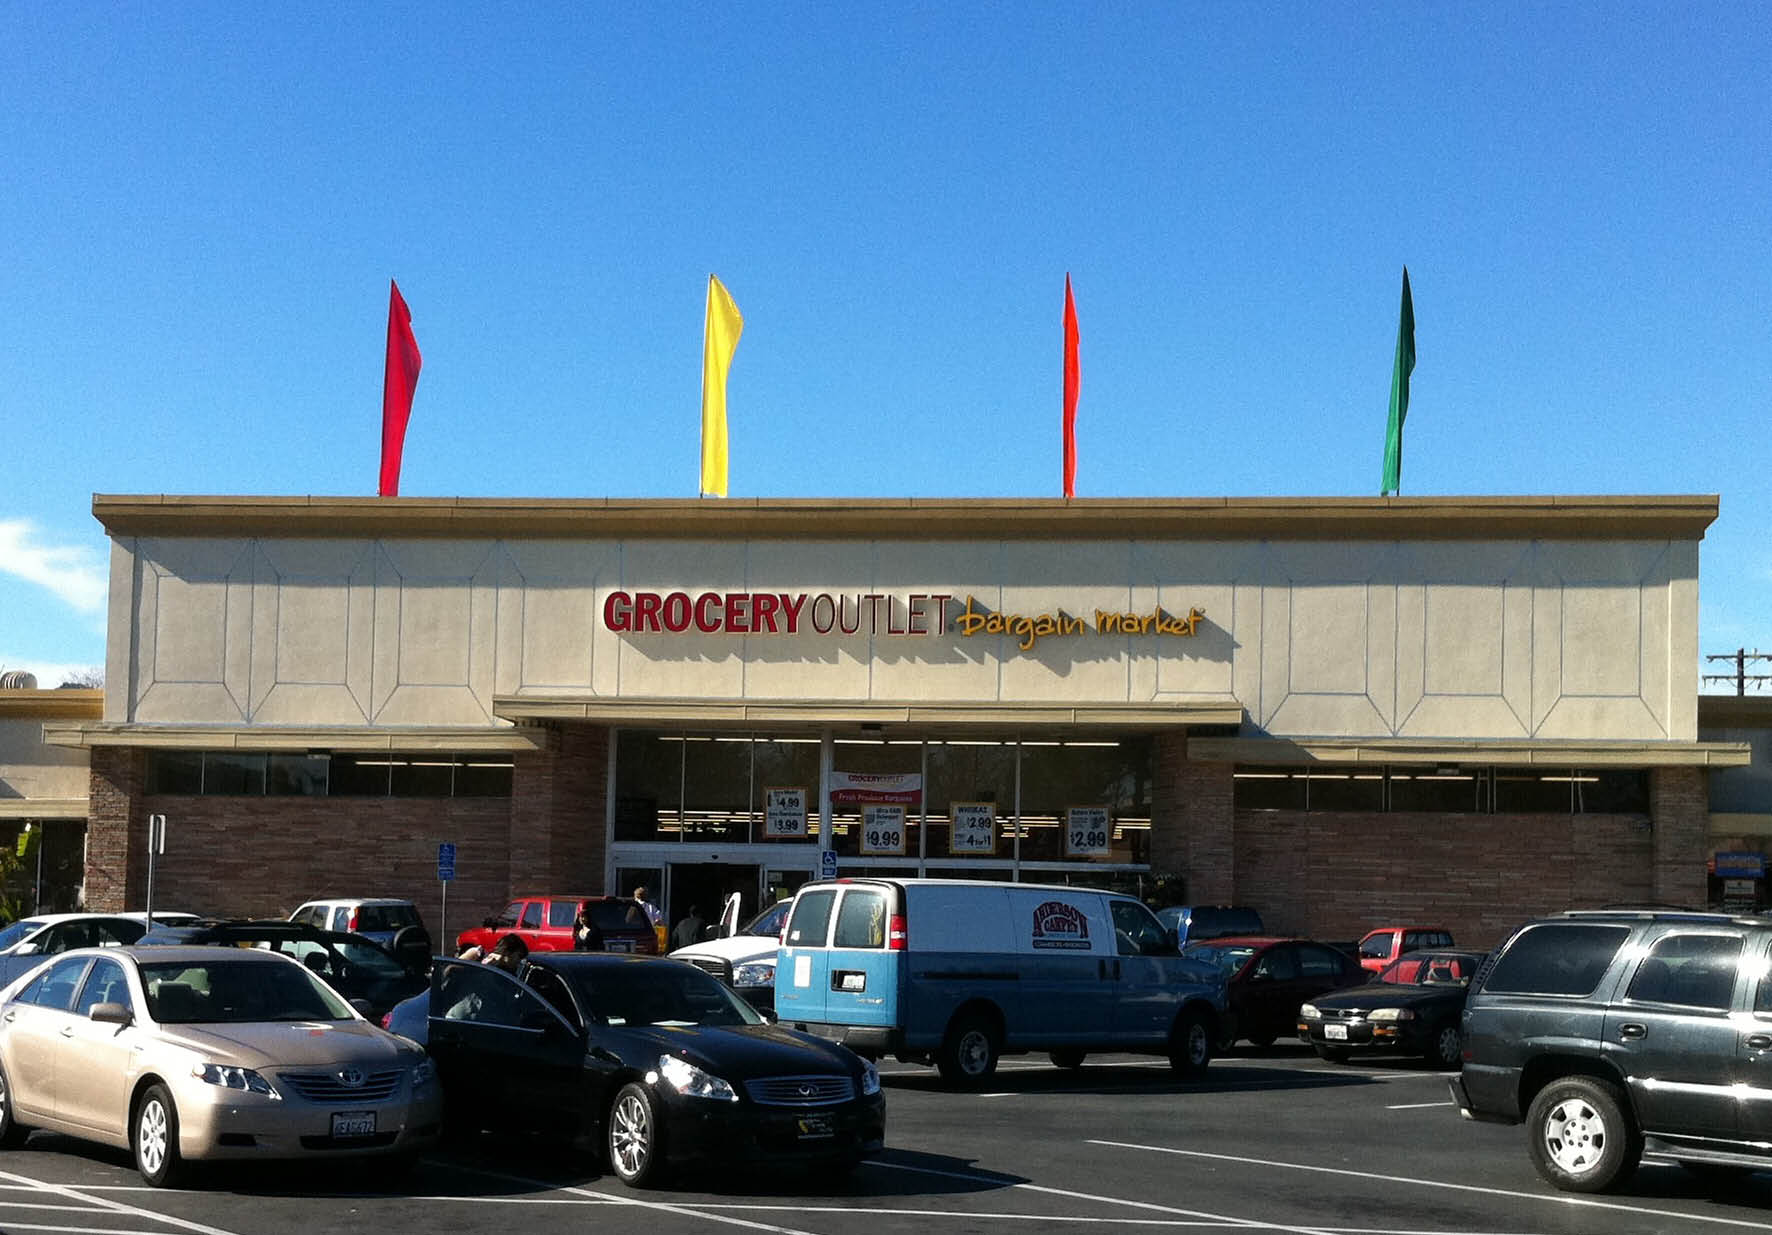 Grocery outlet in Contra Costa County